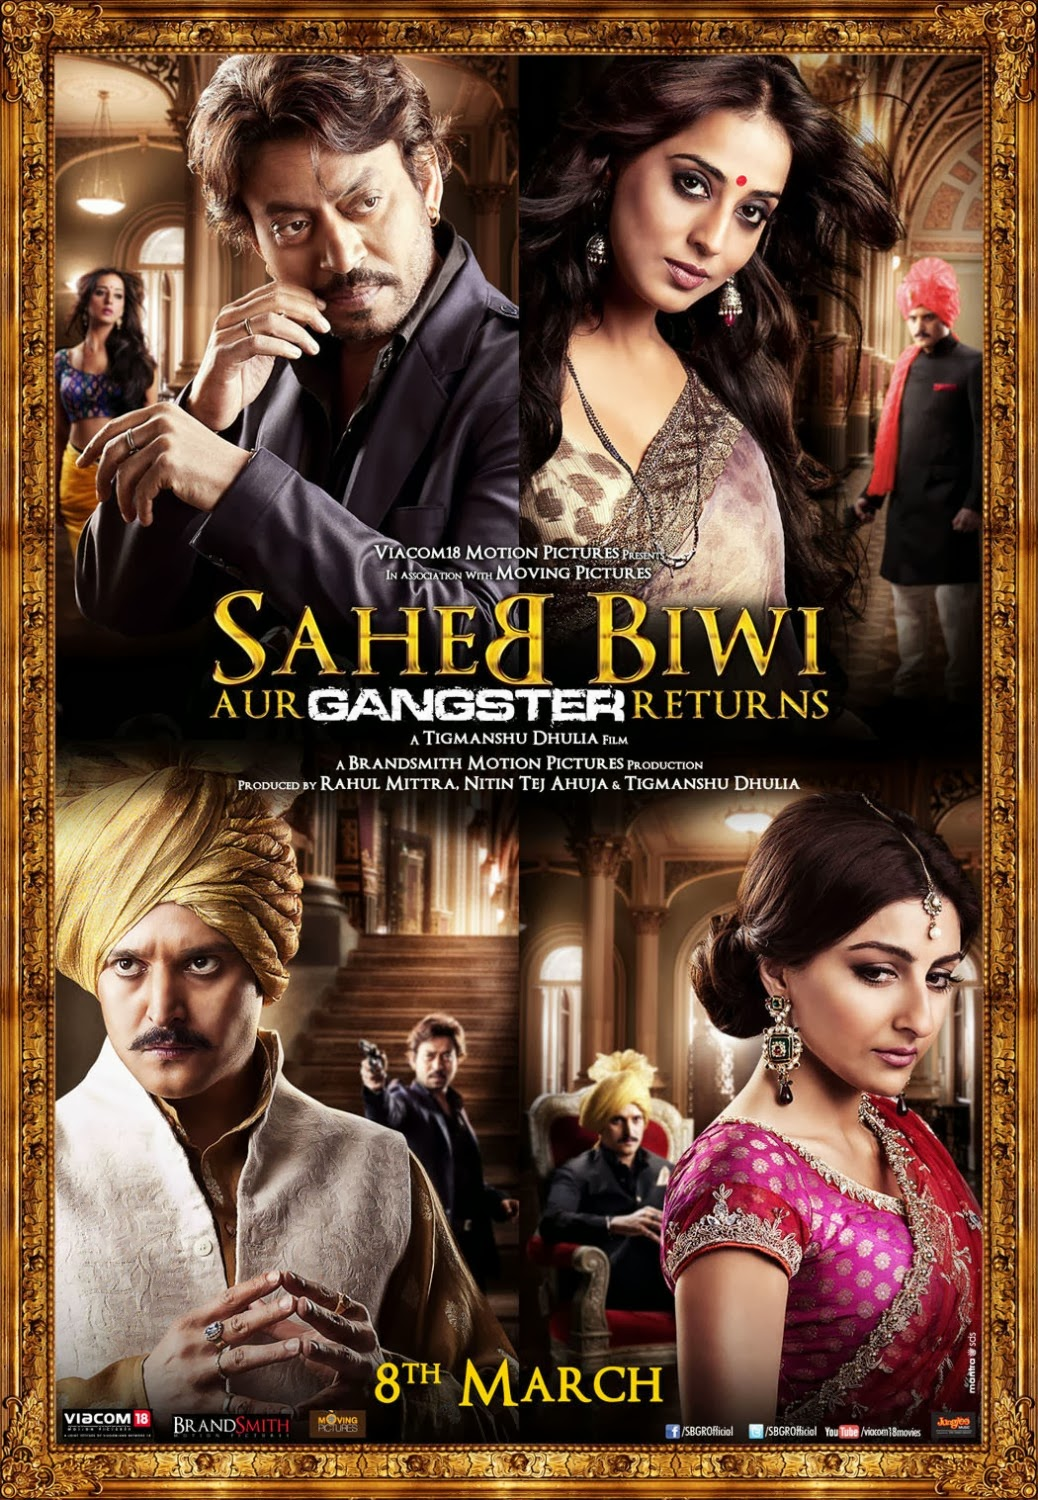 Saheb Biwi Aur Gangster Returns 2013 Hindi Full Movie Watch Online